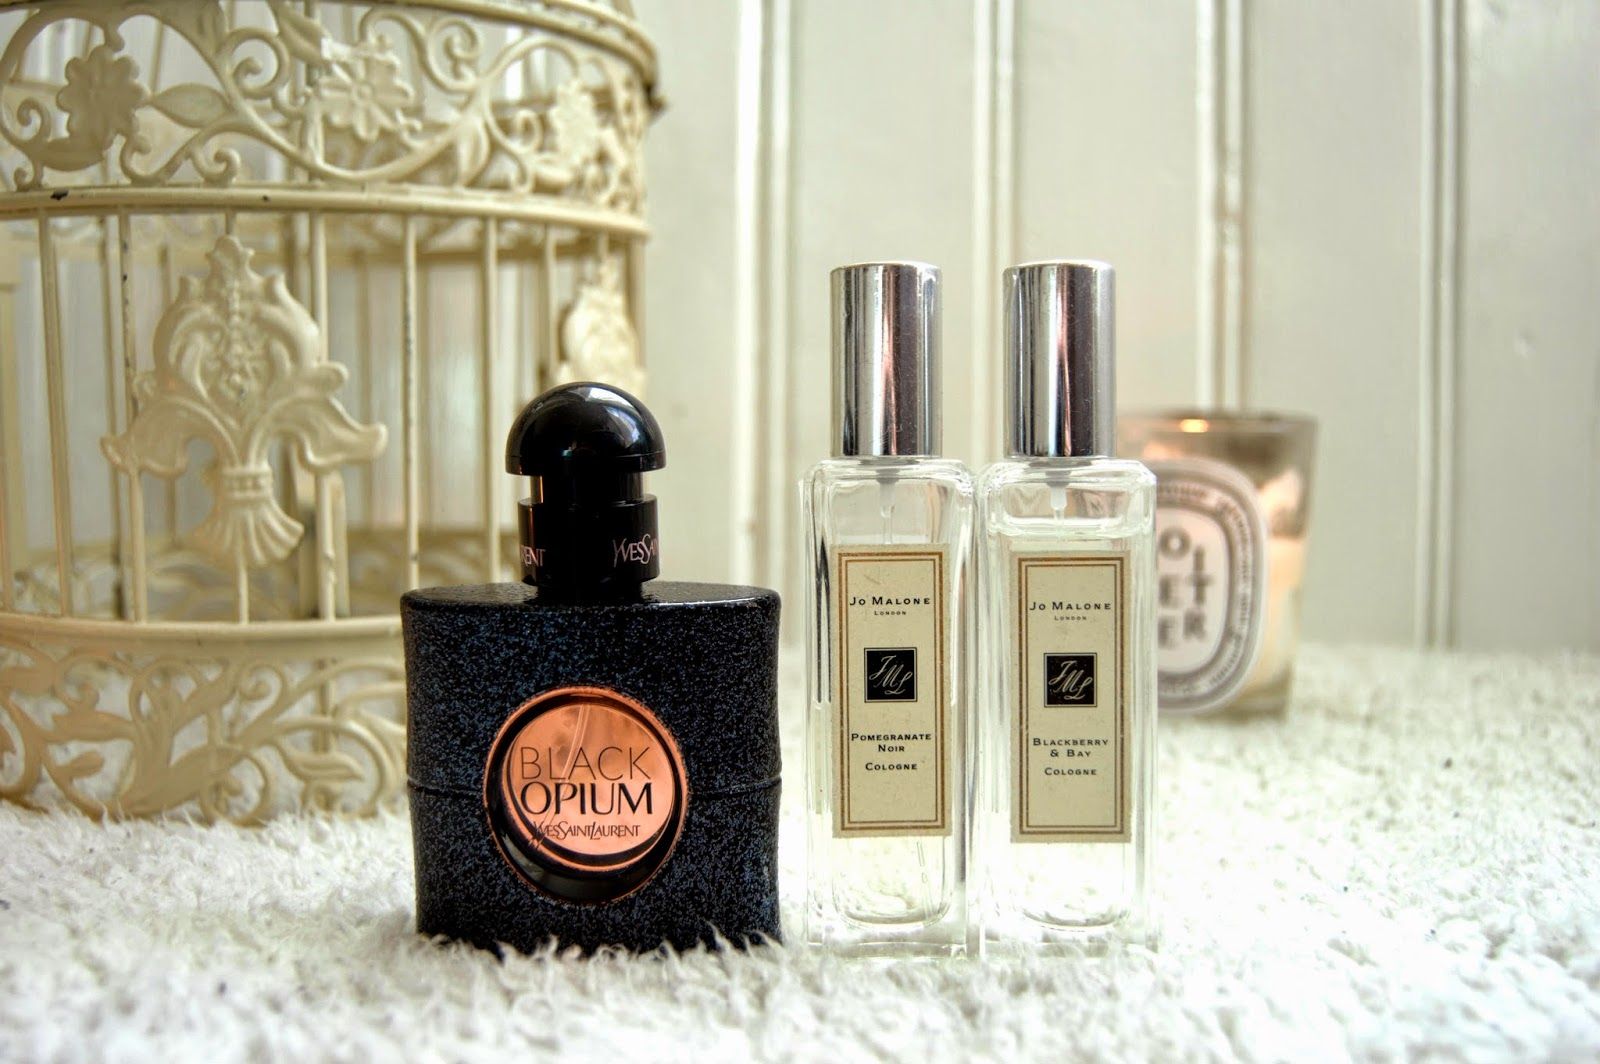 Winter-fragrance-Jo Malone-Pomegranate Noir-Blackberry and Bay-YSL-Black Opium